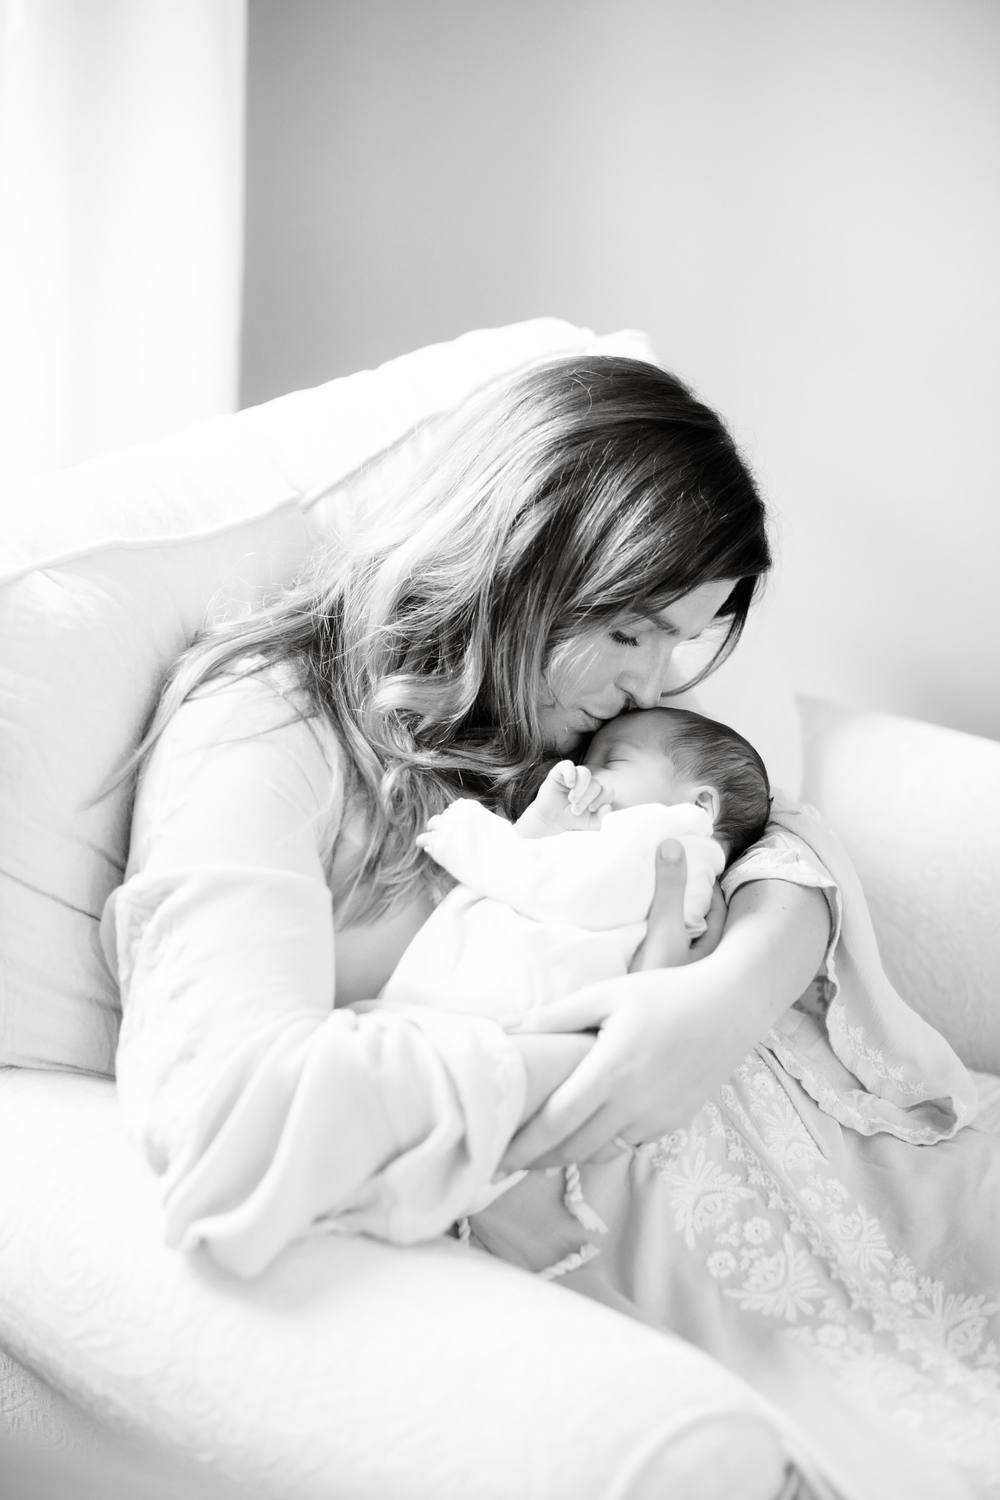 kate stafford photography | newborn